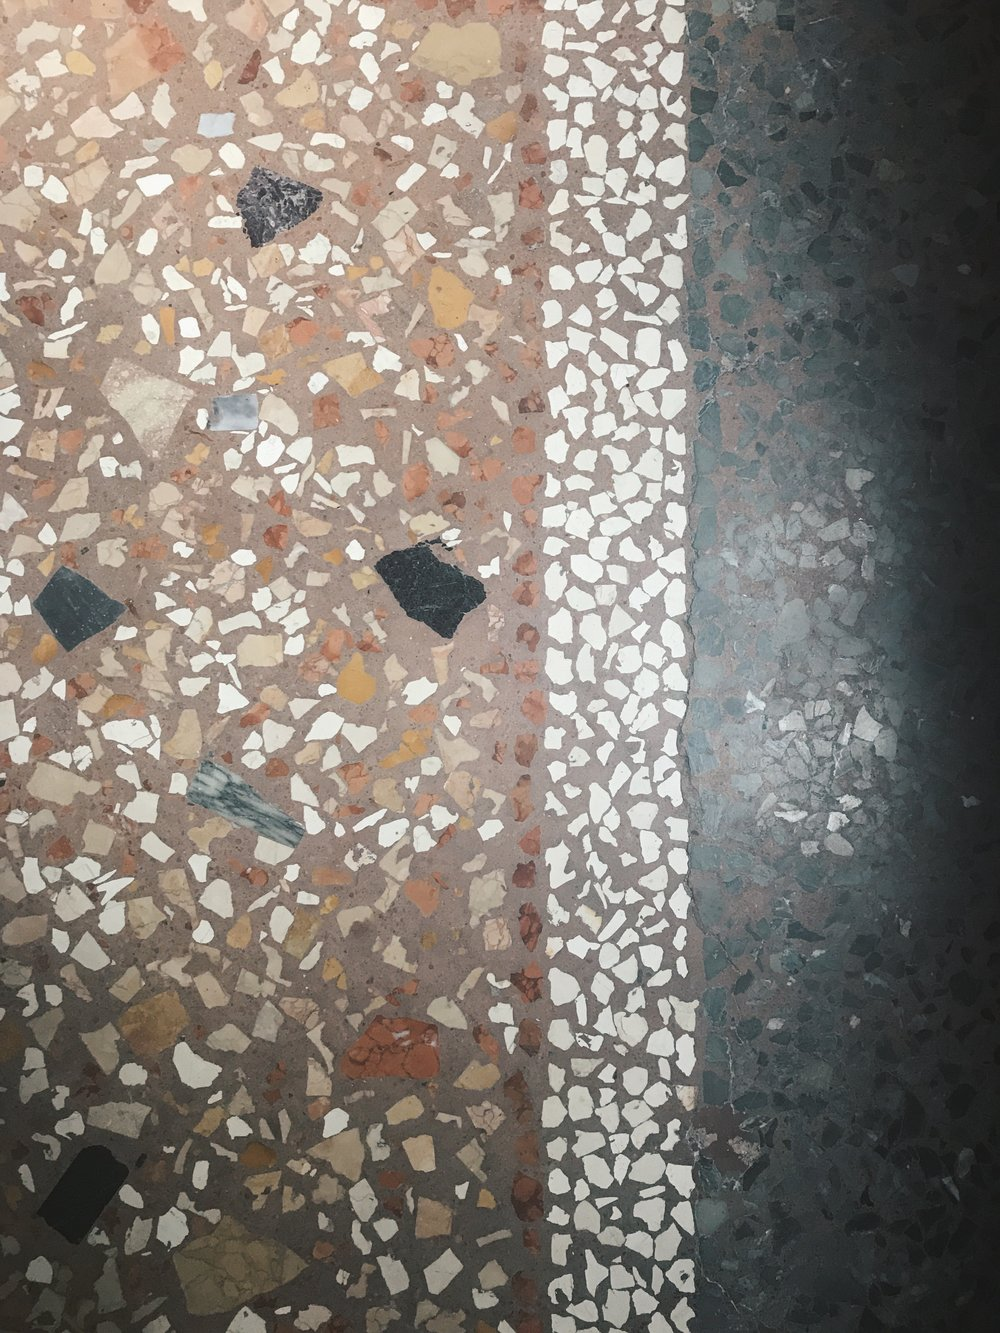 Terrazzo Love on my Air BnB bedroom floor